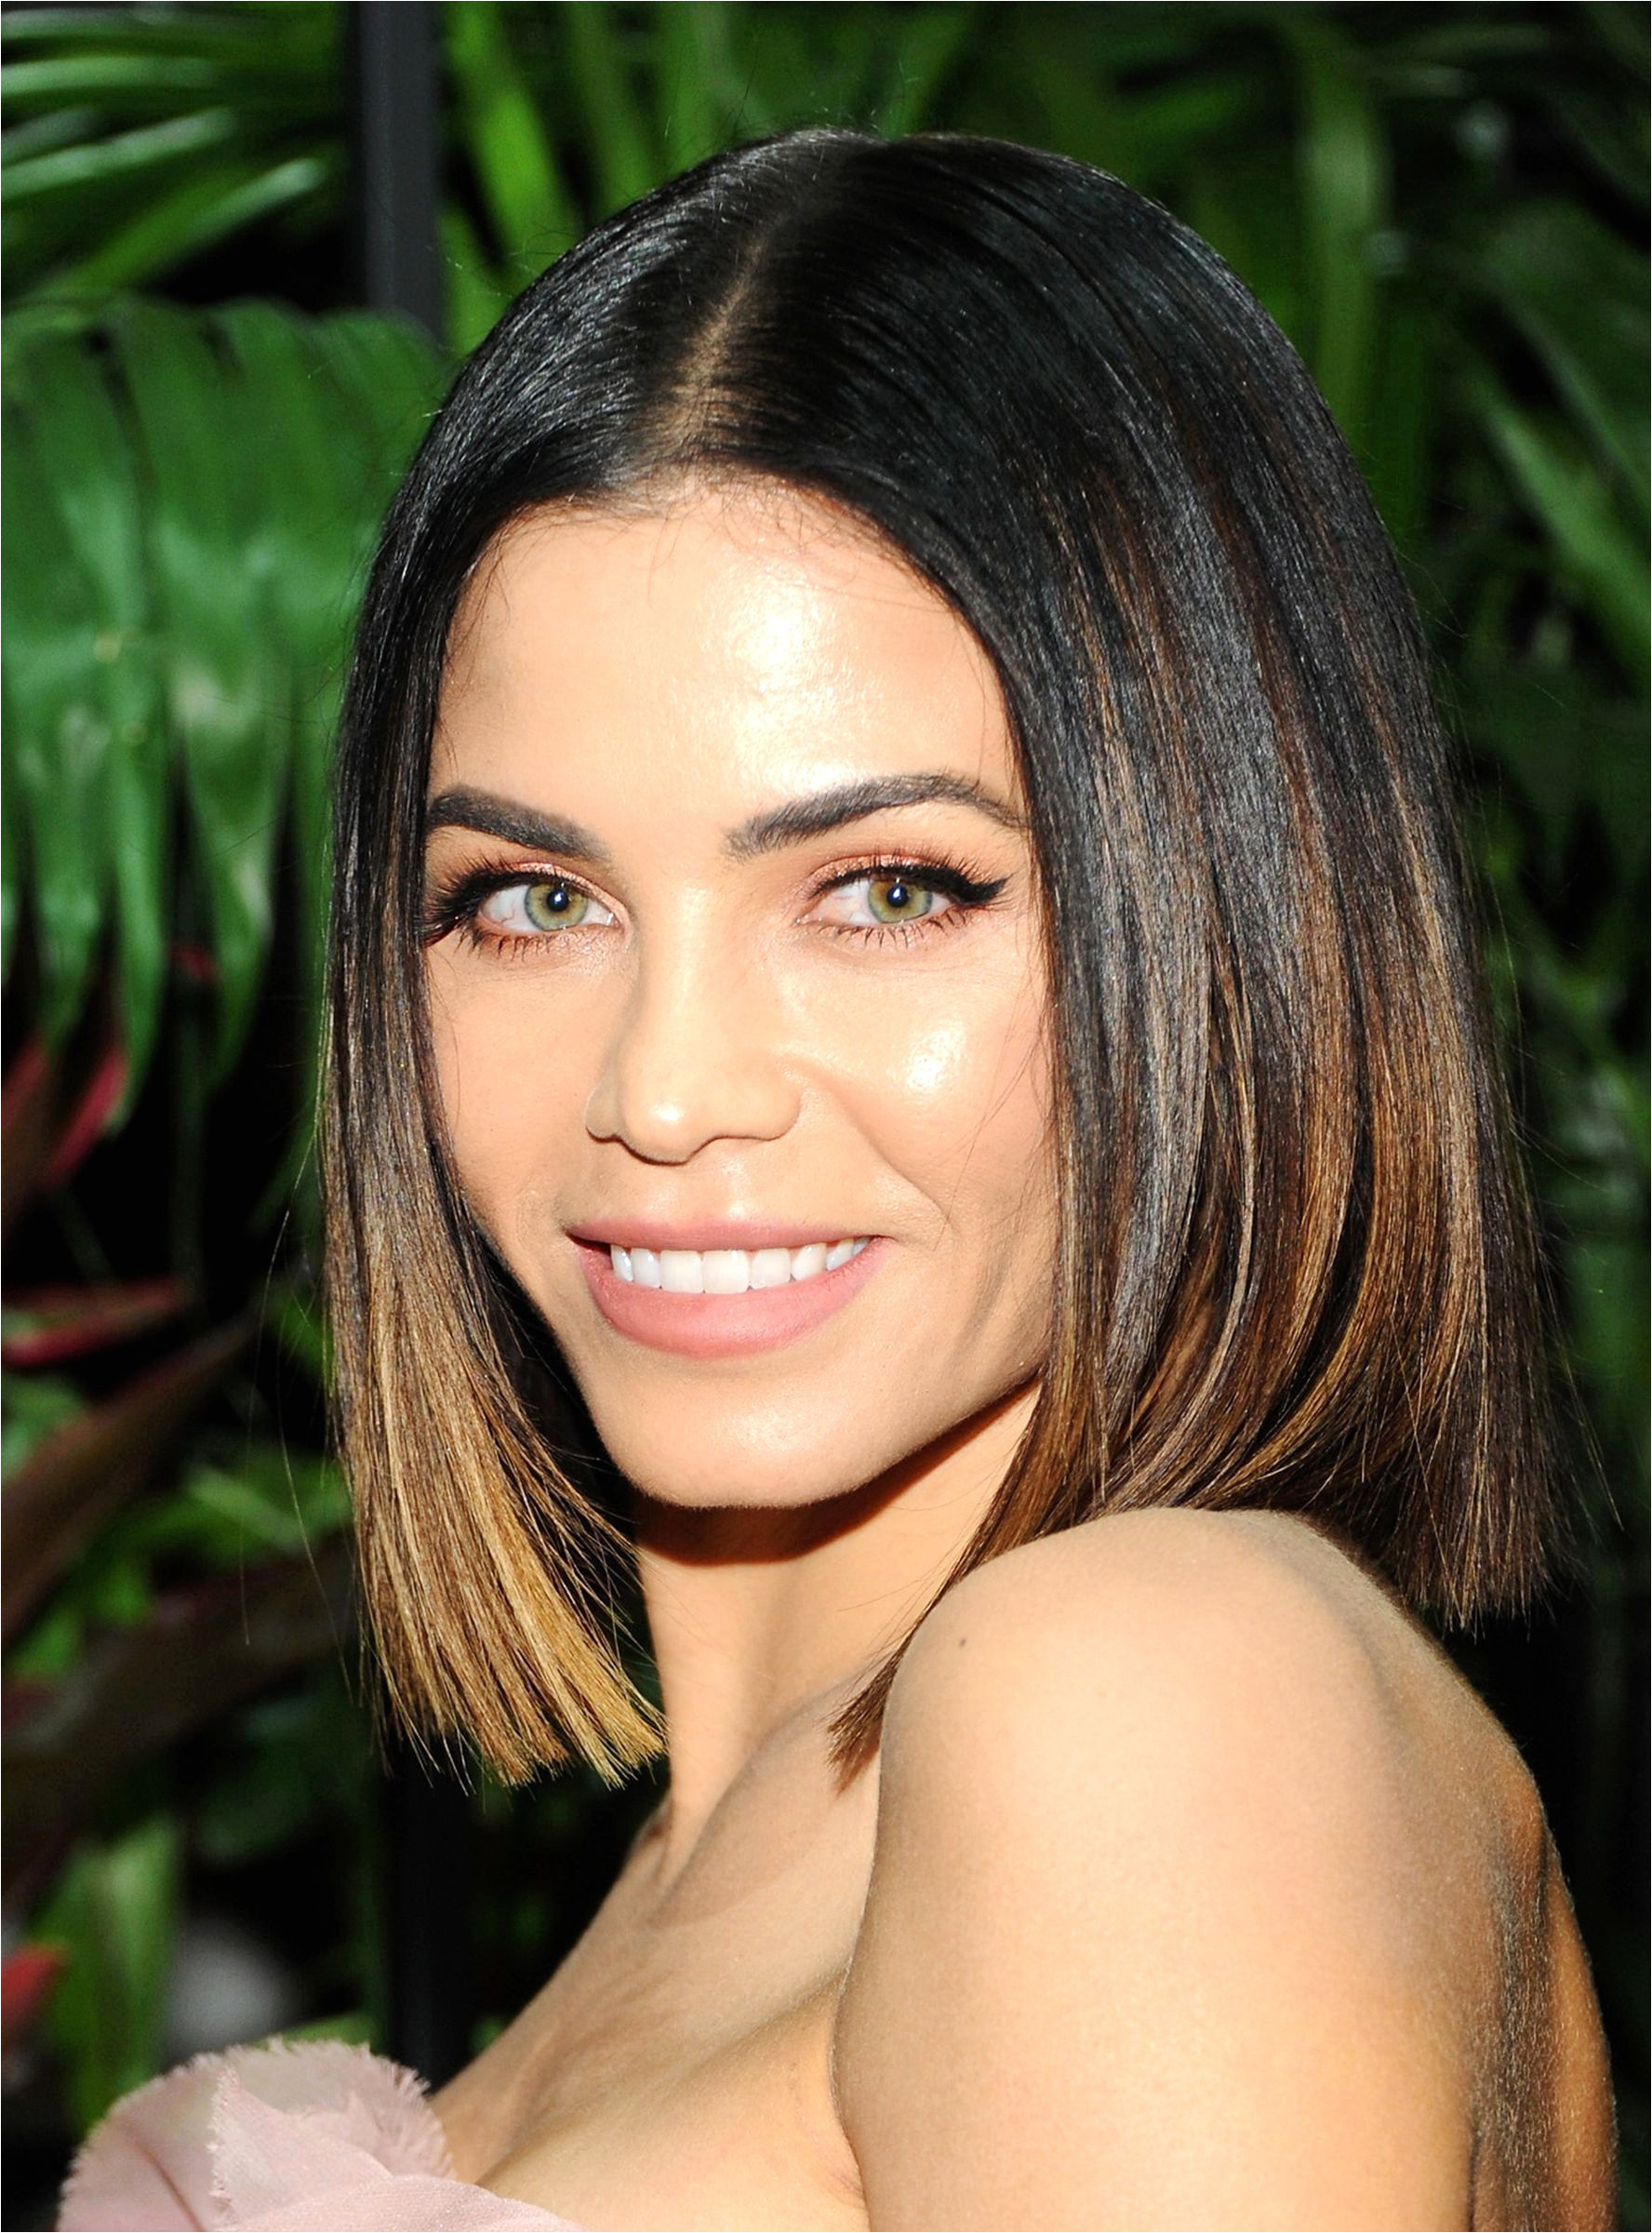 Latest Hairstyles for Teenage Girls Inspirational Girl Hair Cuts Gallery Hairstyles for Tweens with Thick Hair